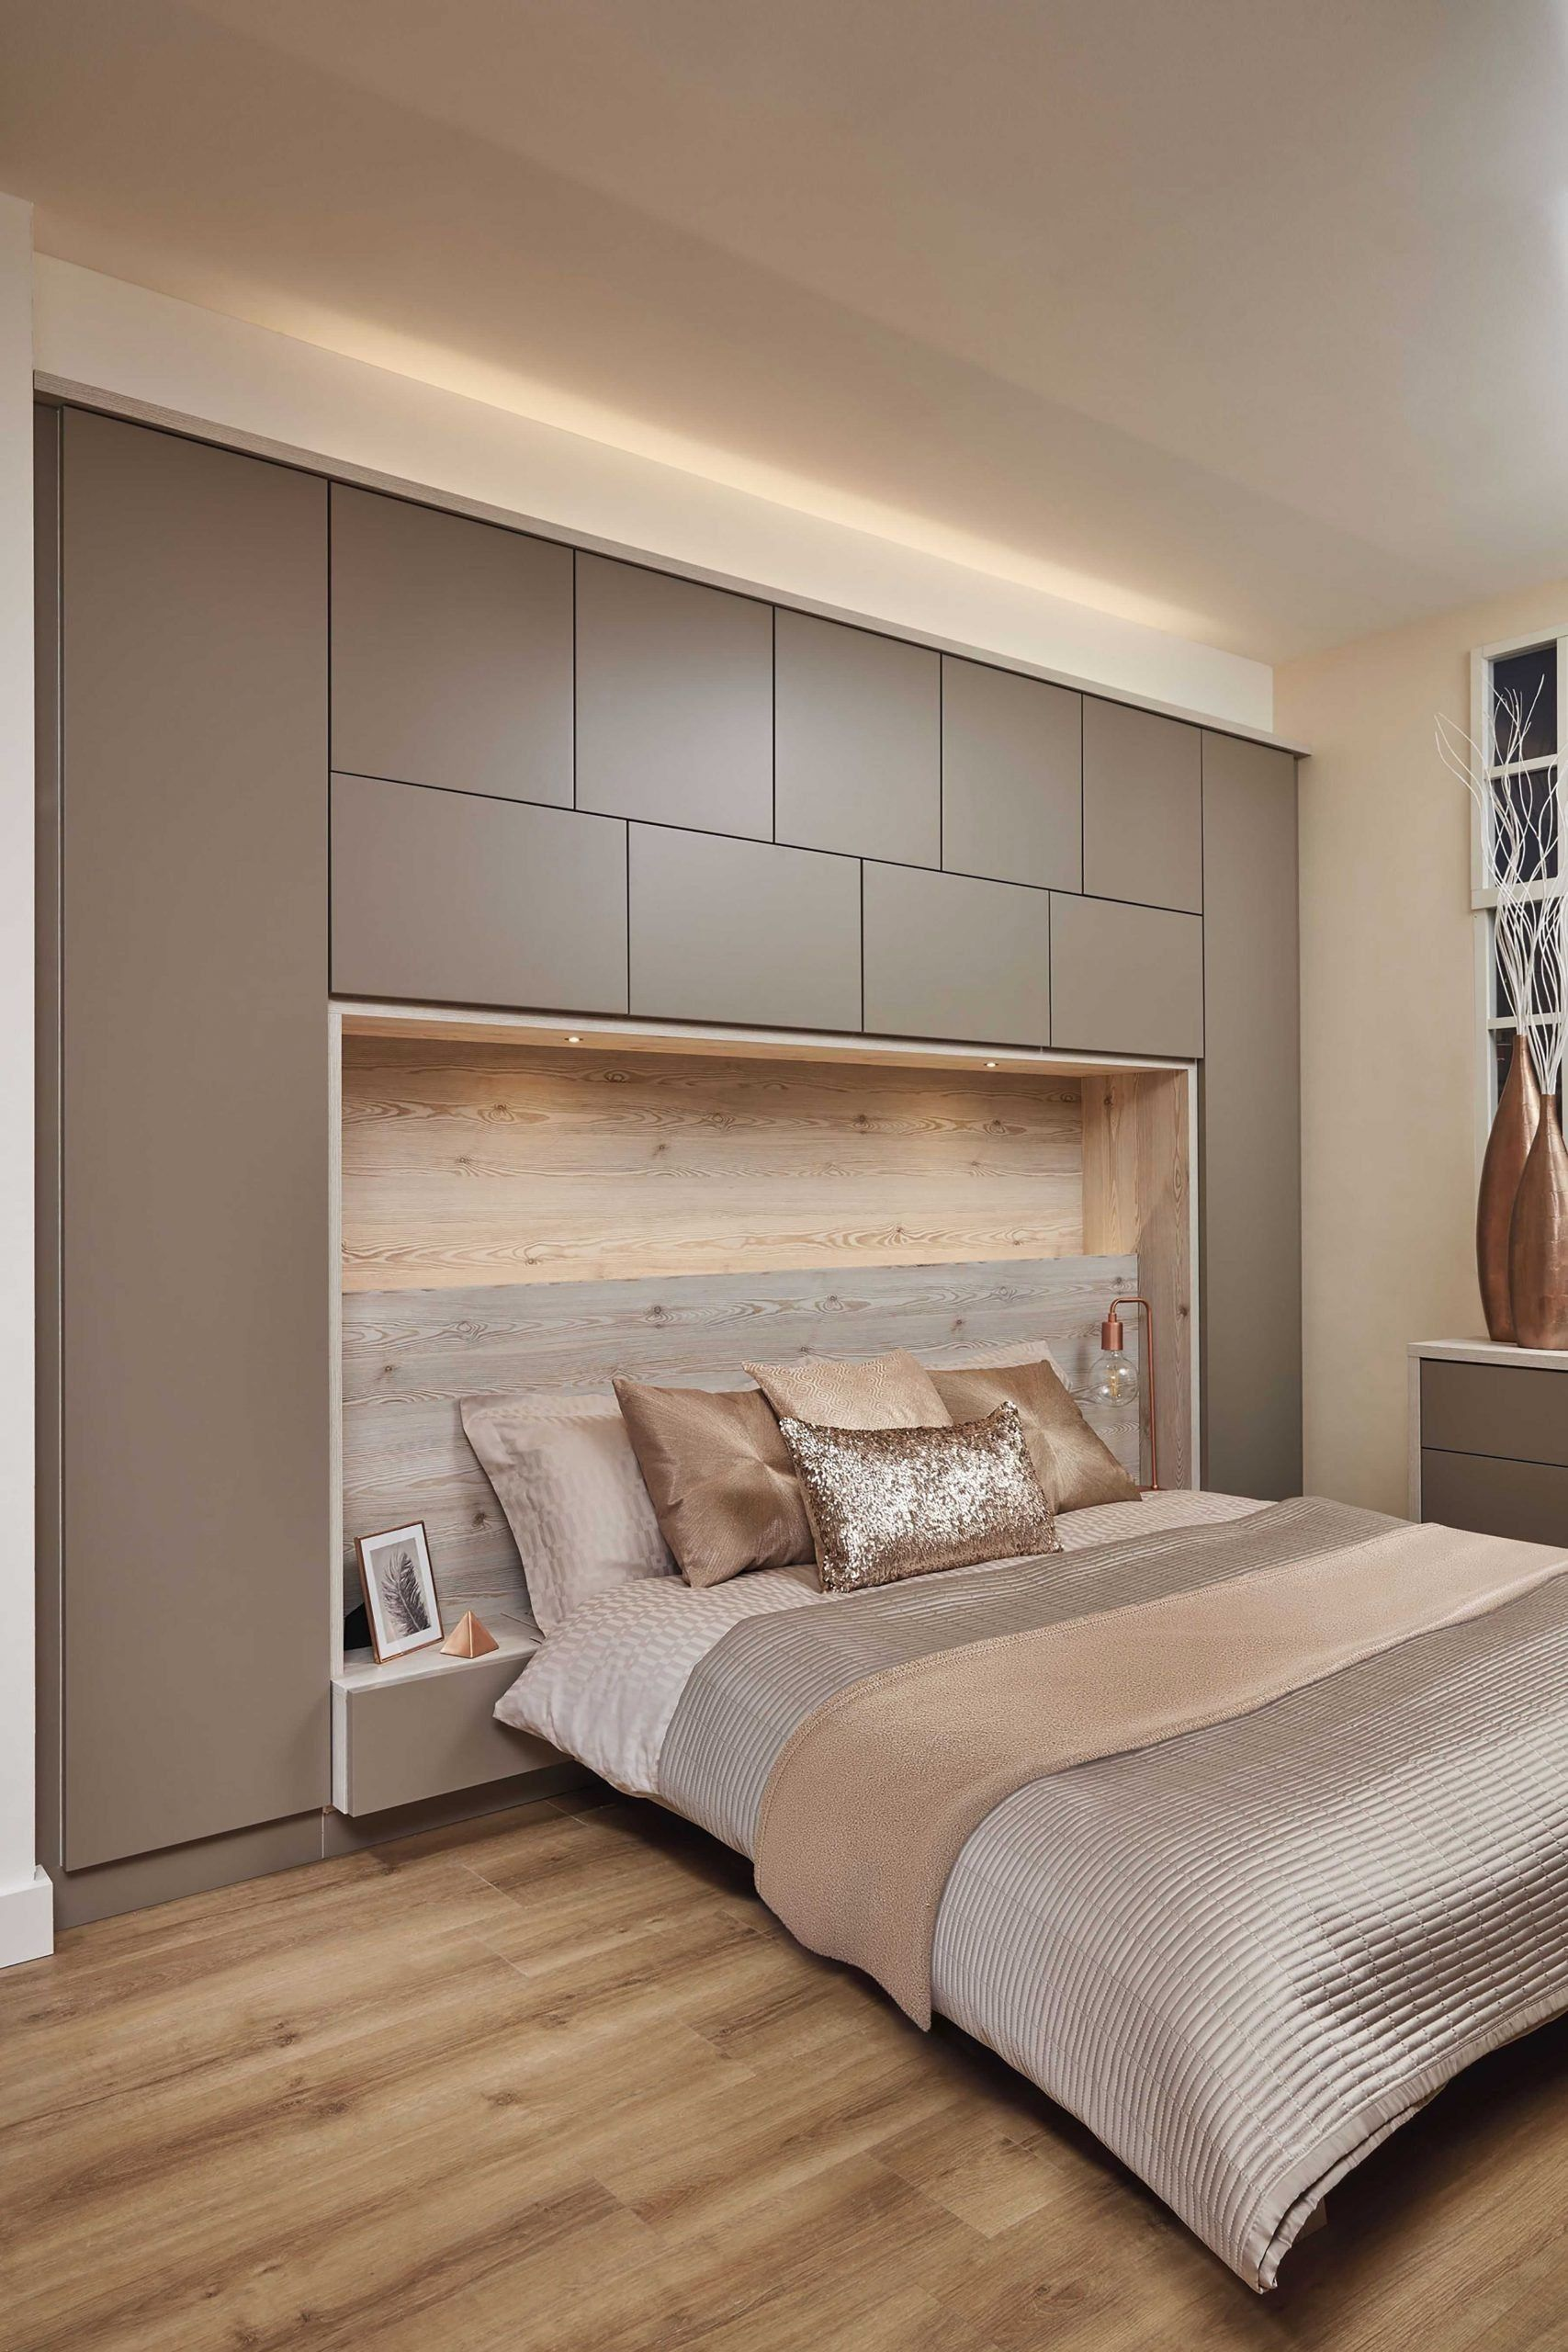 Modern Master Bedroom Decorating Ideas 35 Best Bedroom Ideas Are Simple And Fun In 2020 Small Master Bedroom Layout Small Master Bedroom Modern Master Bedroom Design